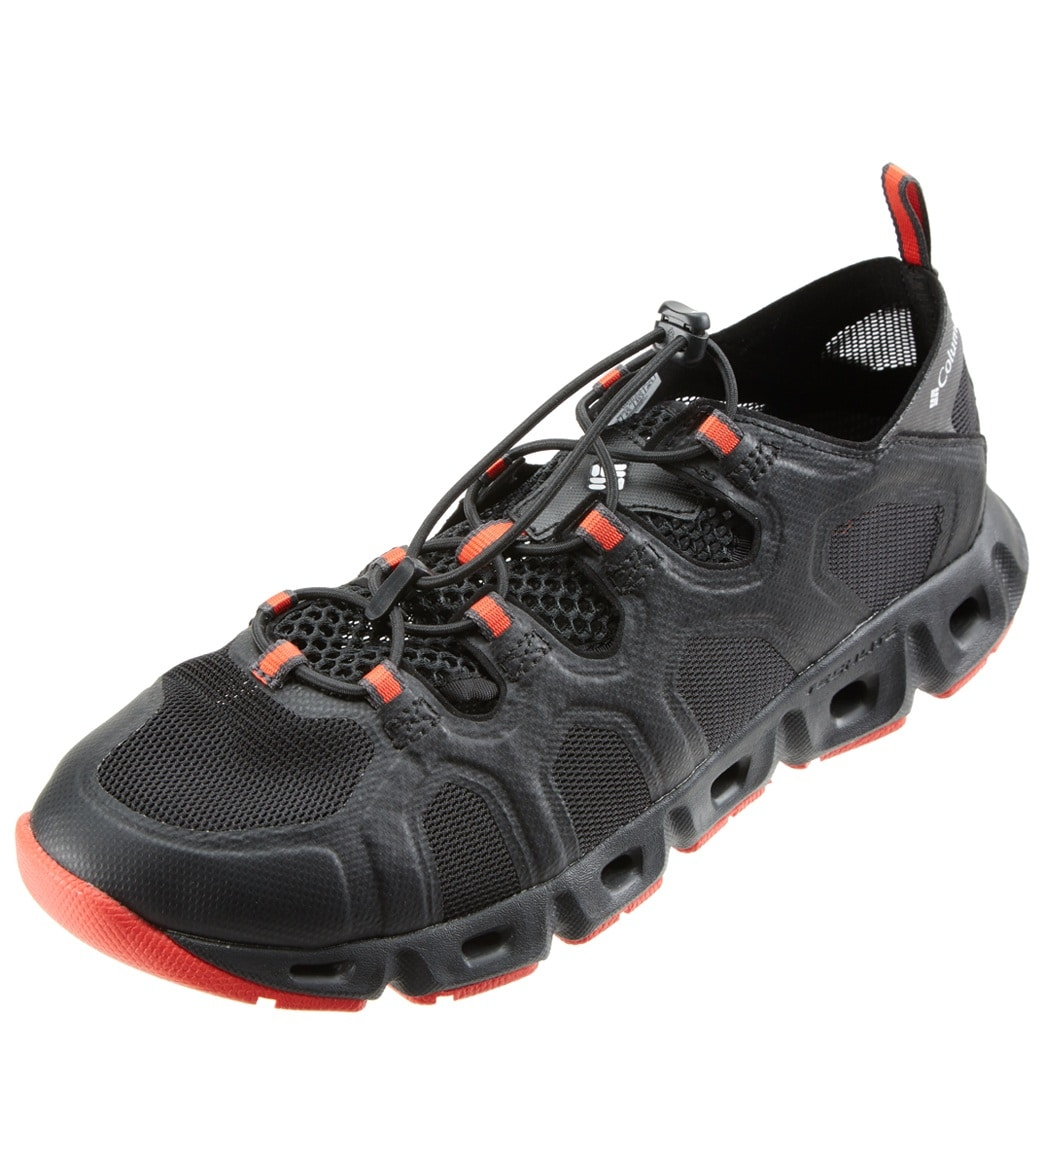 4ac6078e3f8b Columbia Men s Supervent III Hybrid Shoe at SwimOutlet.com - Free Shipping